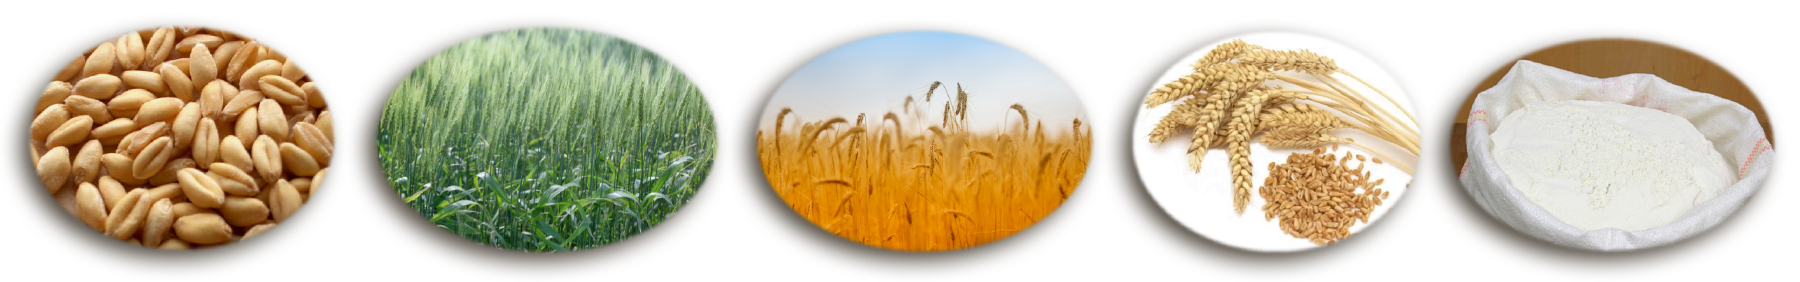 Wheat clipart wheat head. National agriculture in the